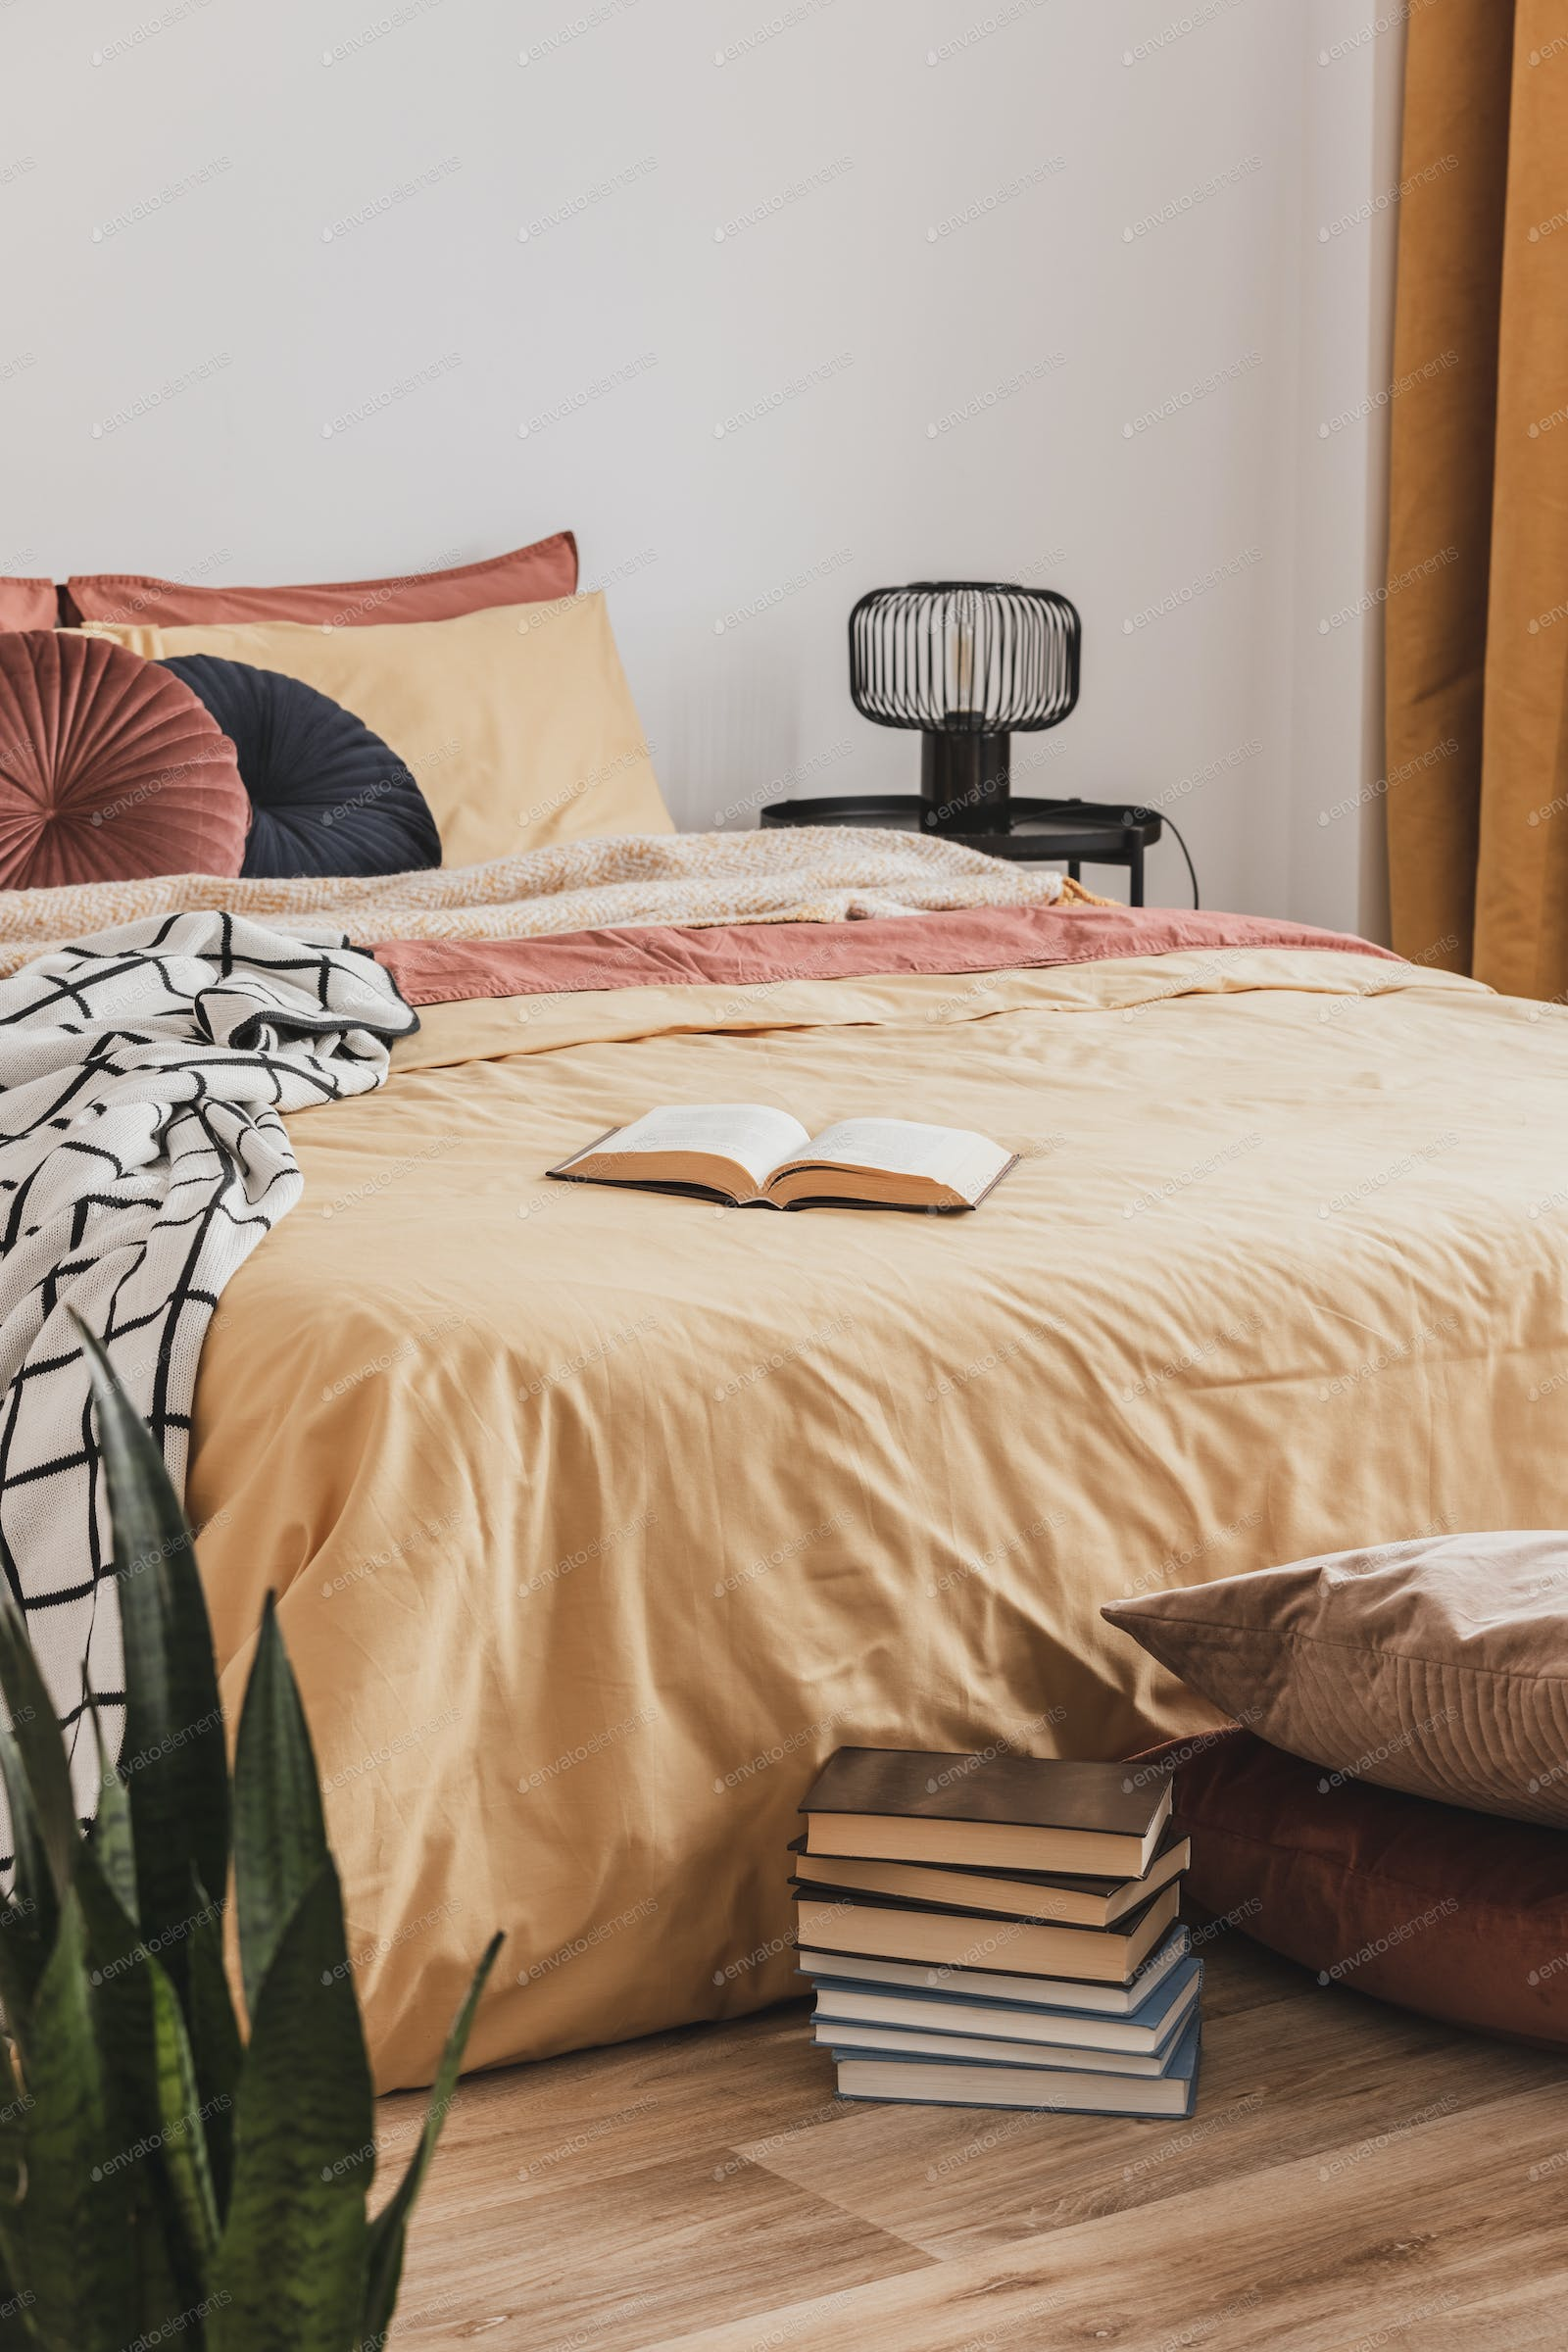 Foot Of The Bed pile of books in foot of king size bed with yellow duvet and ginger pillows  photo by bialasiewicz on envato elements